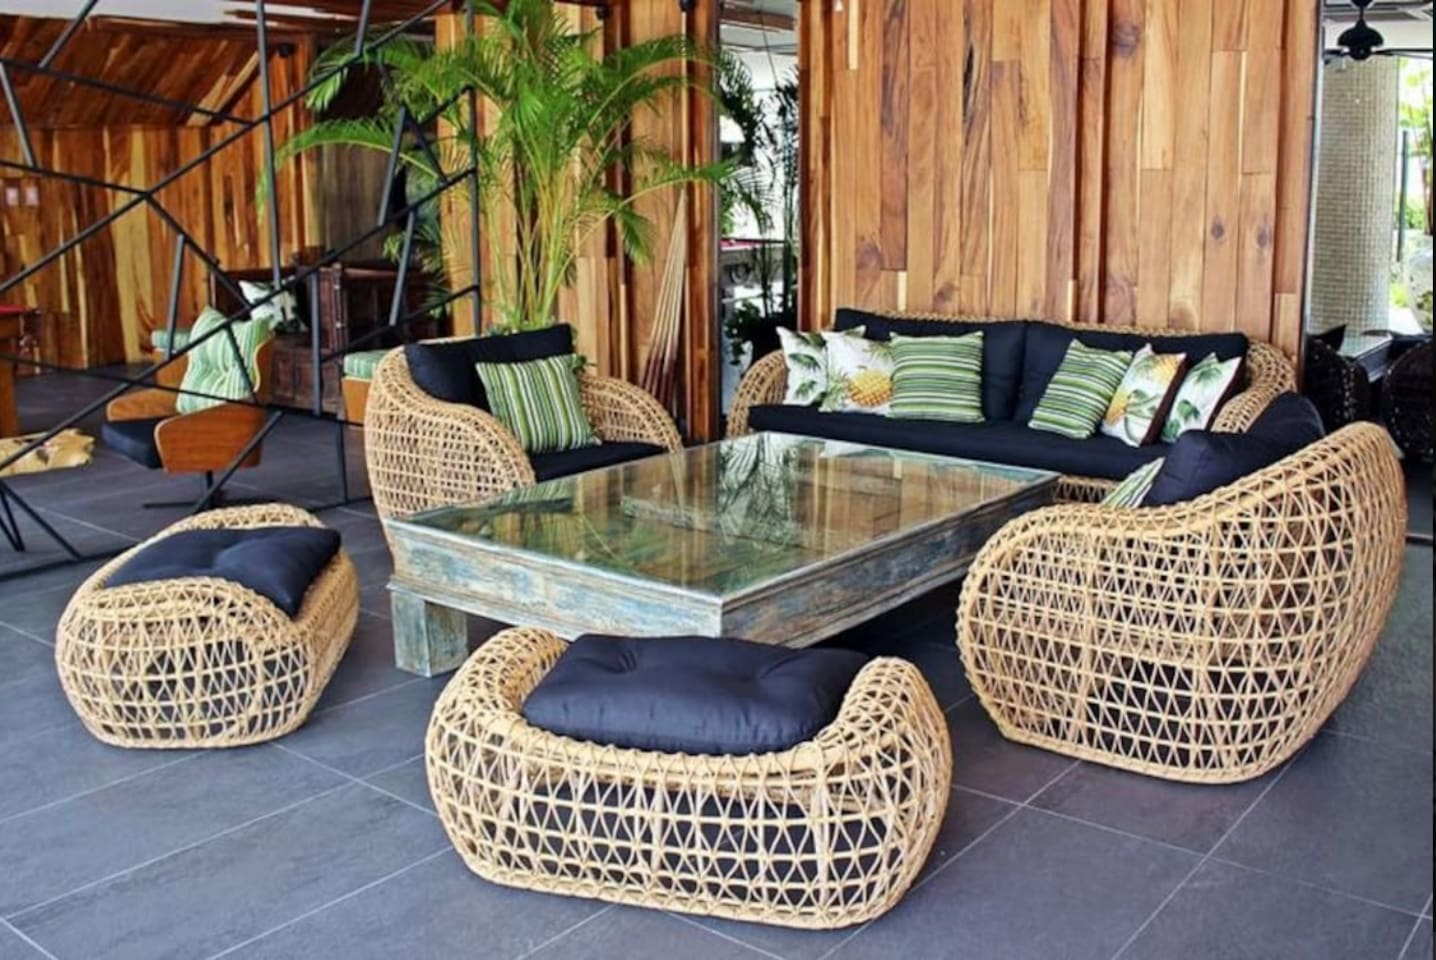 Many common spaces to relax around palm